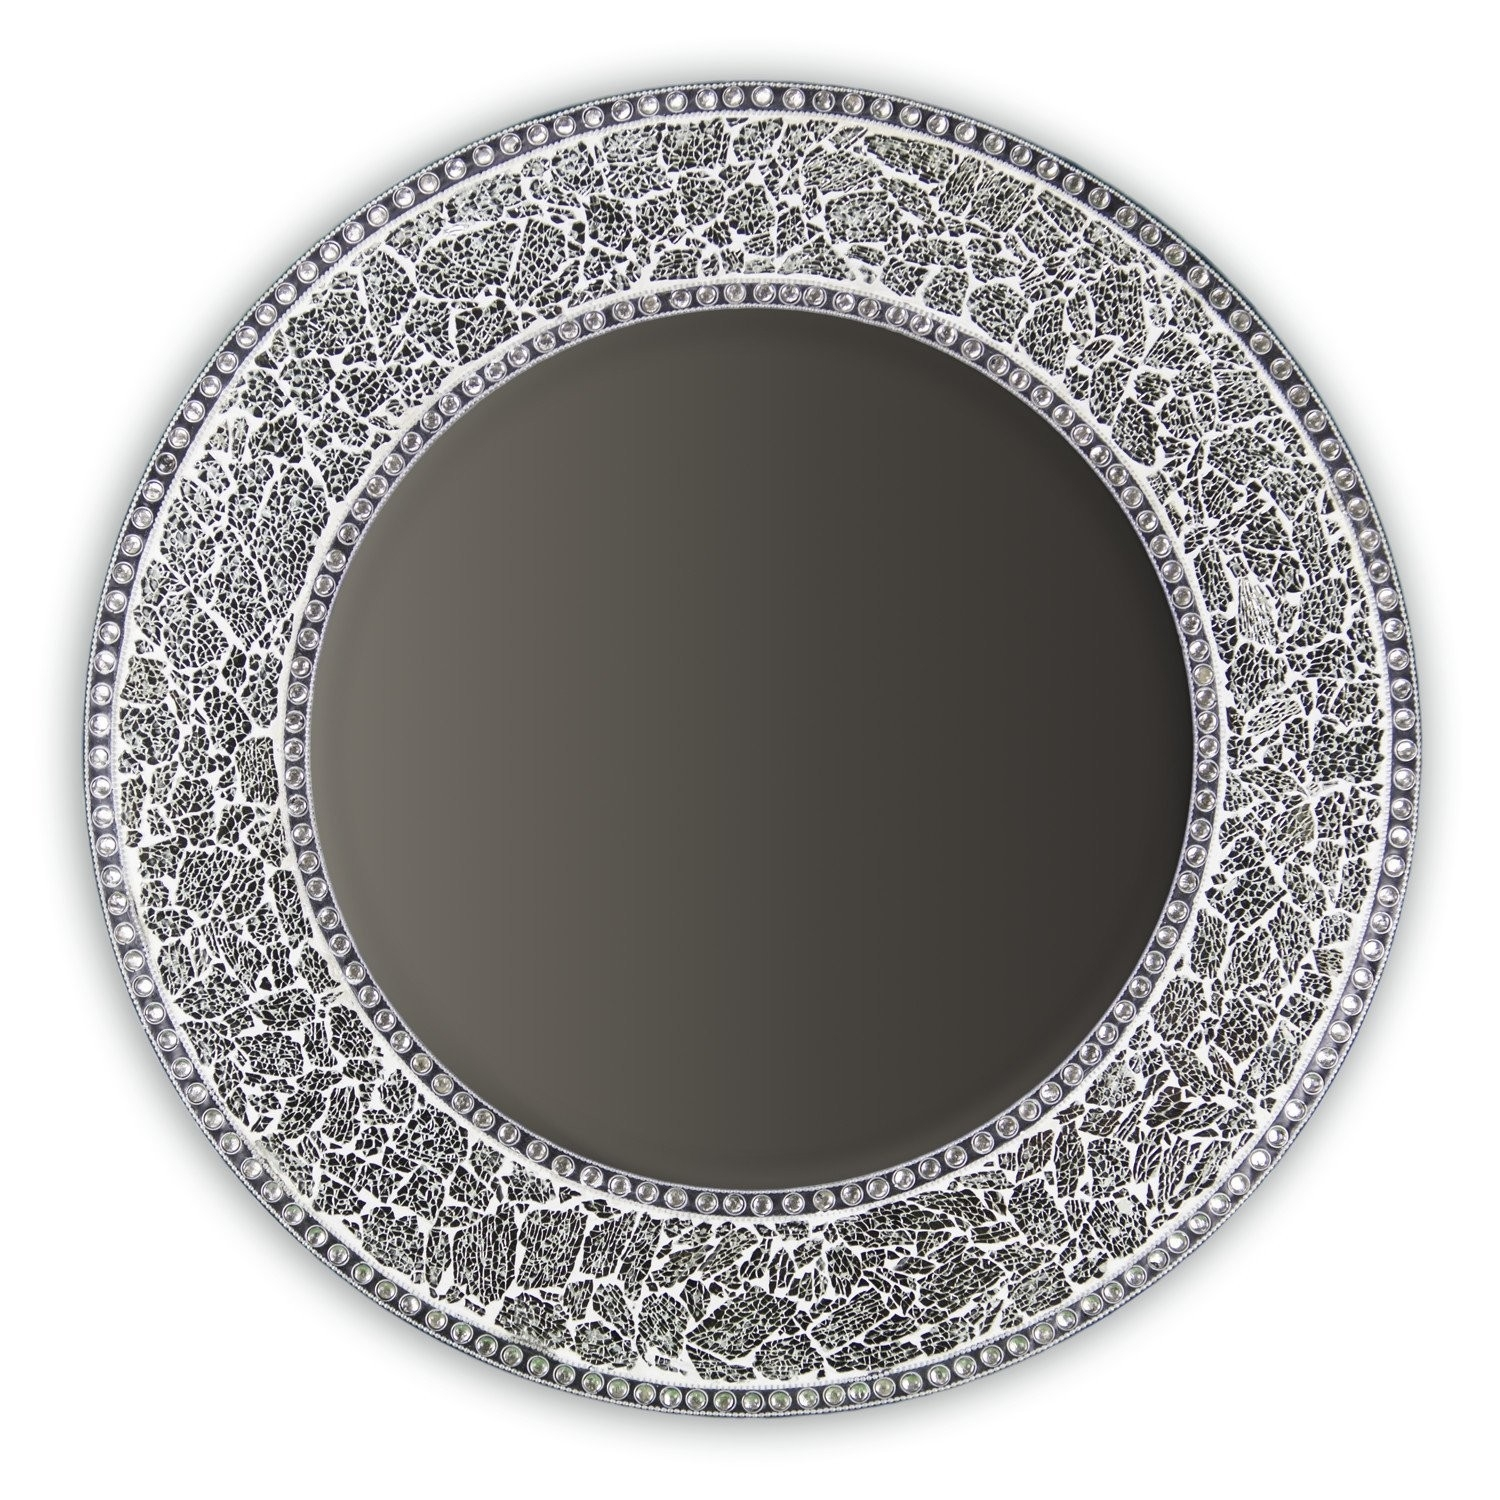 15 ideas of round mosaic wall mirror mirror ideas buy 24 silver round crackled glass mosaic decorative wall mirror regarding round mosaic wall mirror amipublicfo Image collections